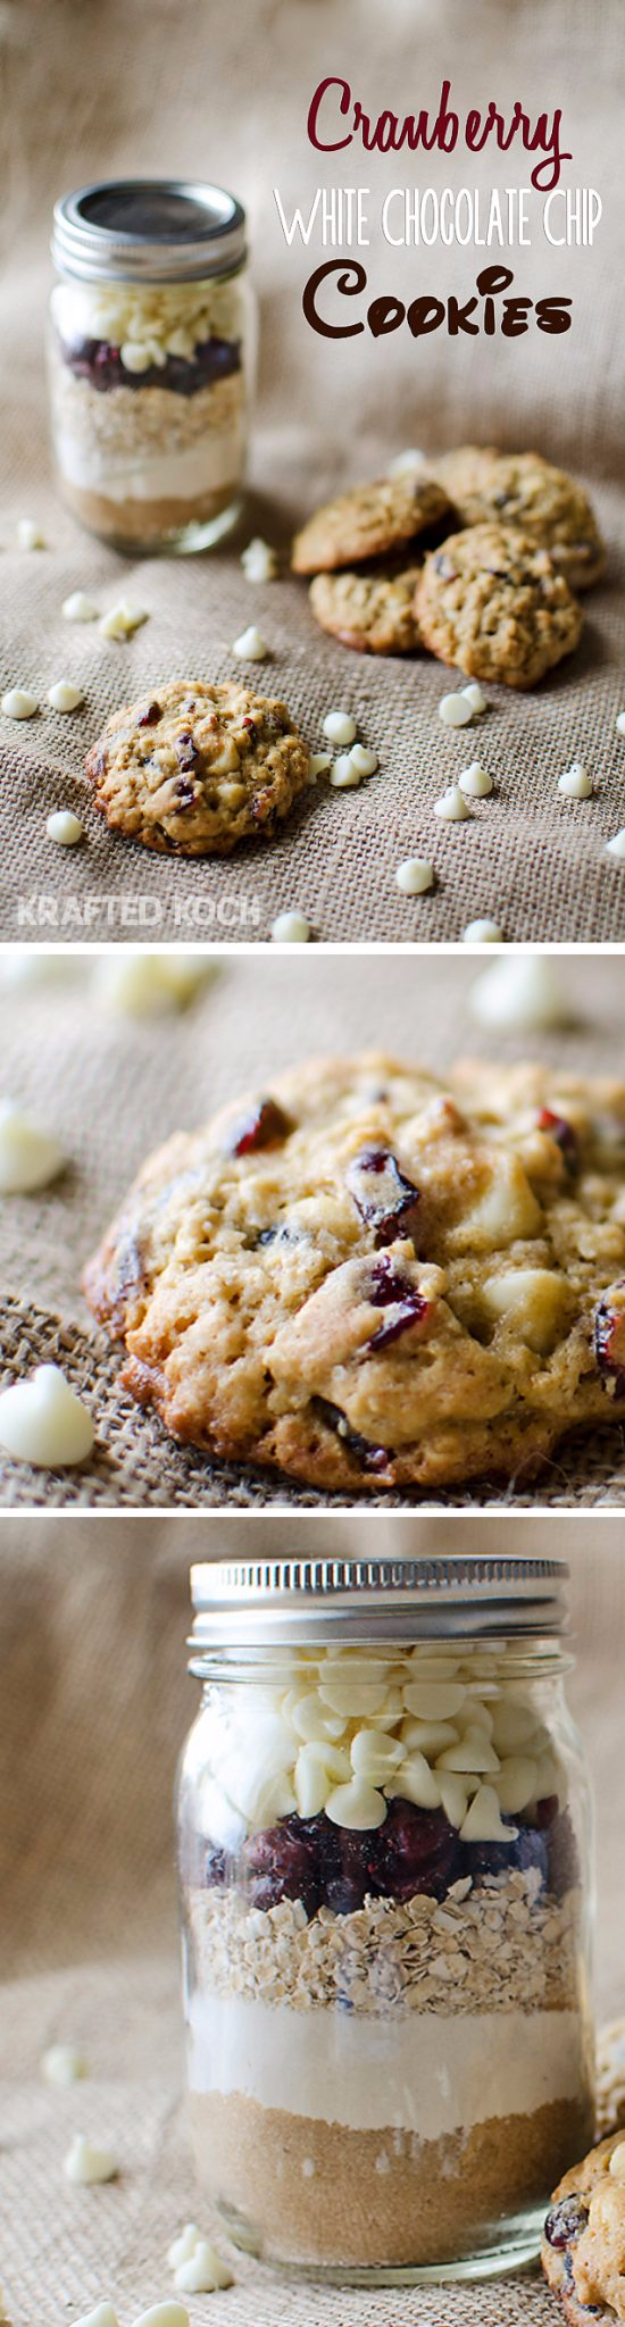 Best Mason Jar Cookies - Cranberry White Chocolate Chip Cookies in a Pint Jar - Mason Jar Cookie Recipe Mix for Cute Decorated DIY Gifts - Easy Chocolate Chip Recipes, Christmas Presents and Wedding Favors in Mason Jars - Fun Ideas for DIY Parties and Cheap Last Minute Gift Ideas for Friends #diygifts #masonjarcrafts